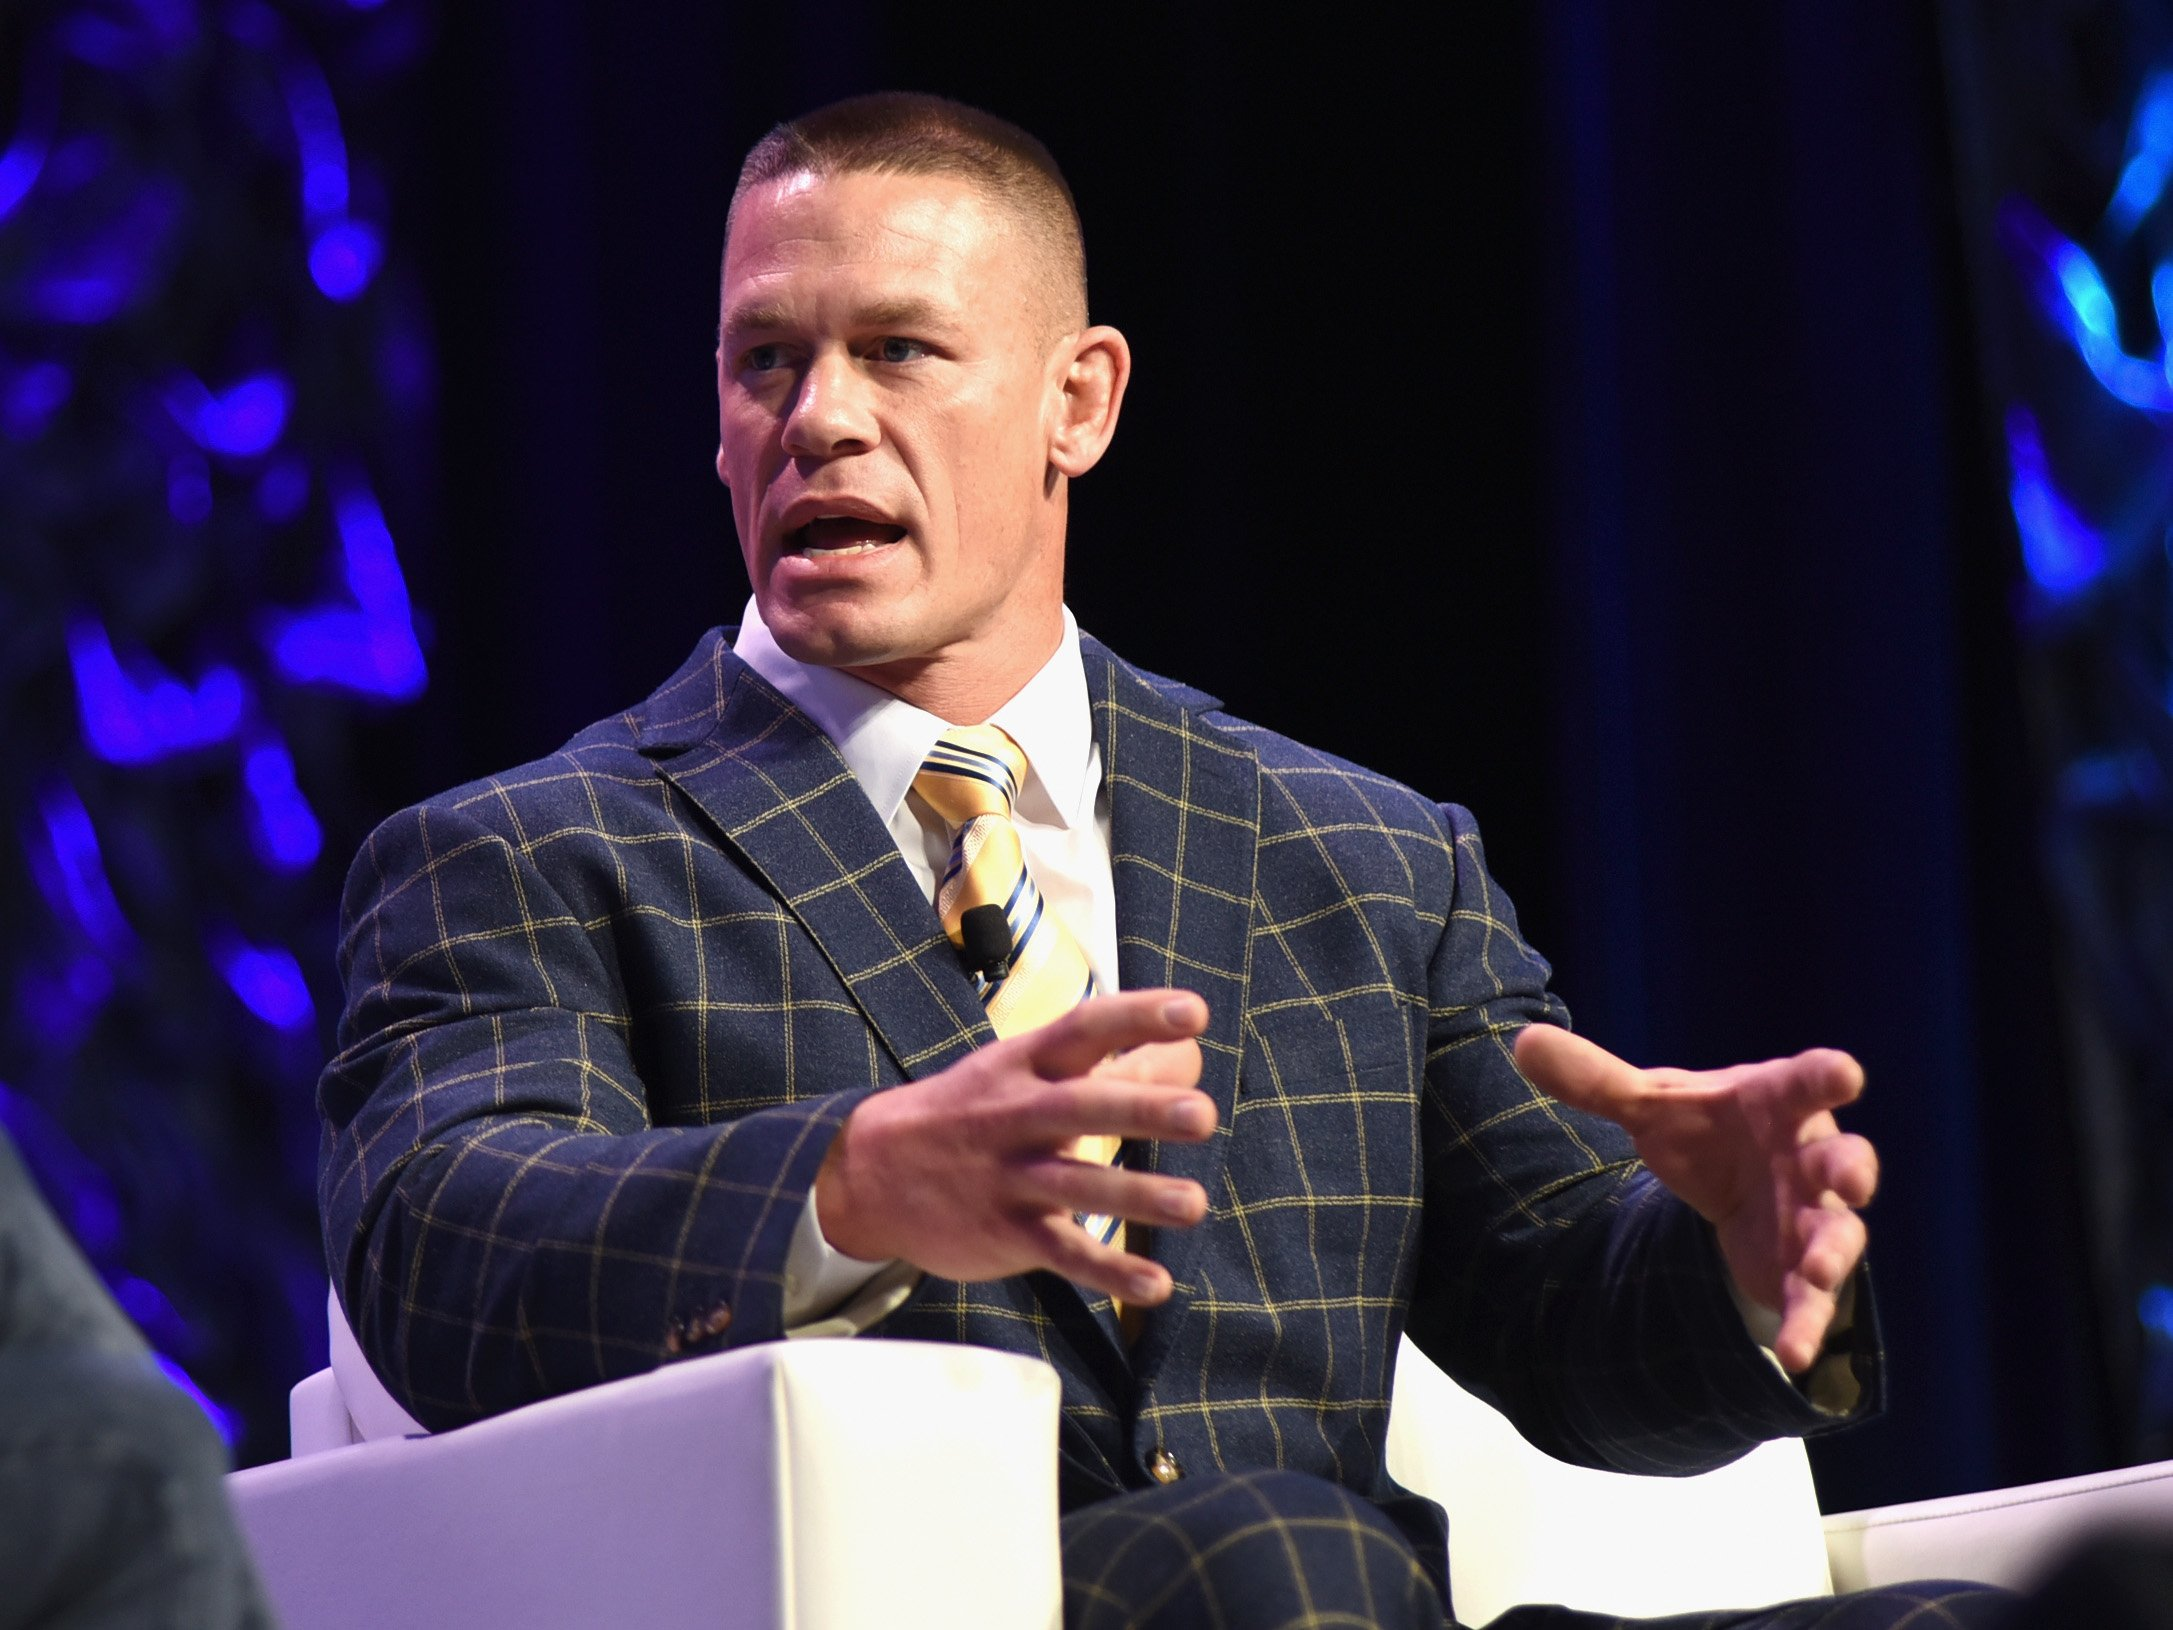 John Cena speaks onstage at 'Featured Speaker: John Cena' during 2017 SXSW Conference and Festivals at Austin Convention Center on March 13, 2017, in Austin, Texas. | Source: Getty Images.